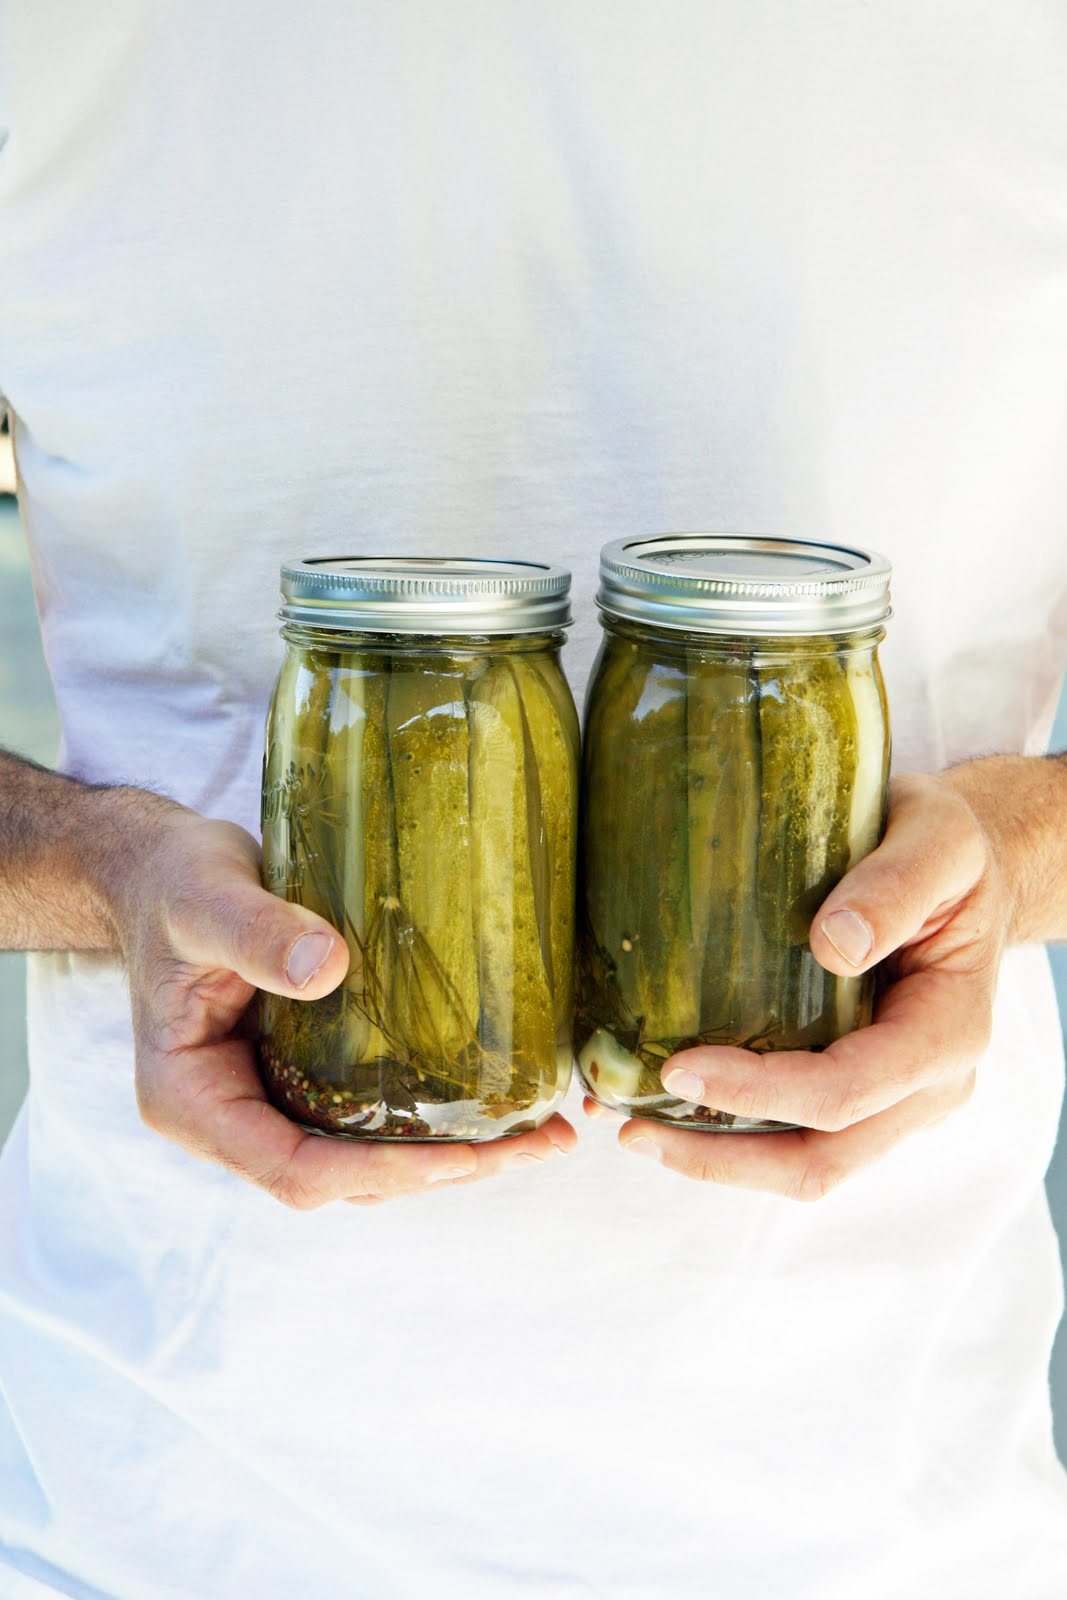 ... bacon quick salt pickles master dill pickle fries by deep fried pickle